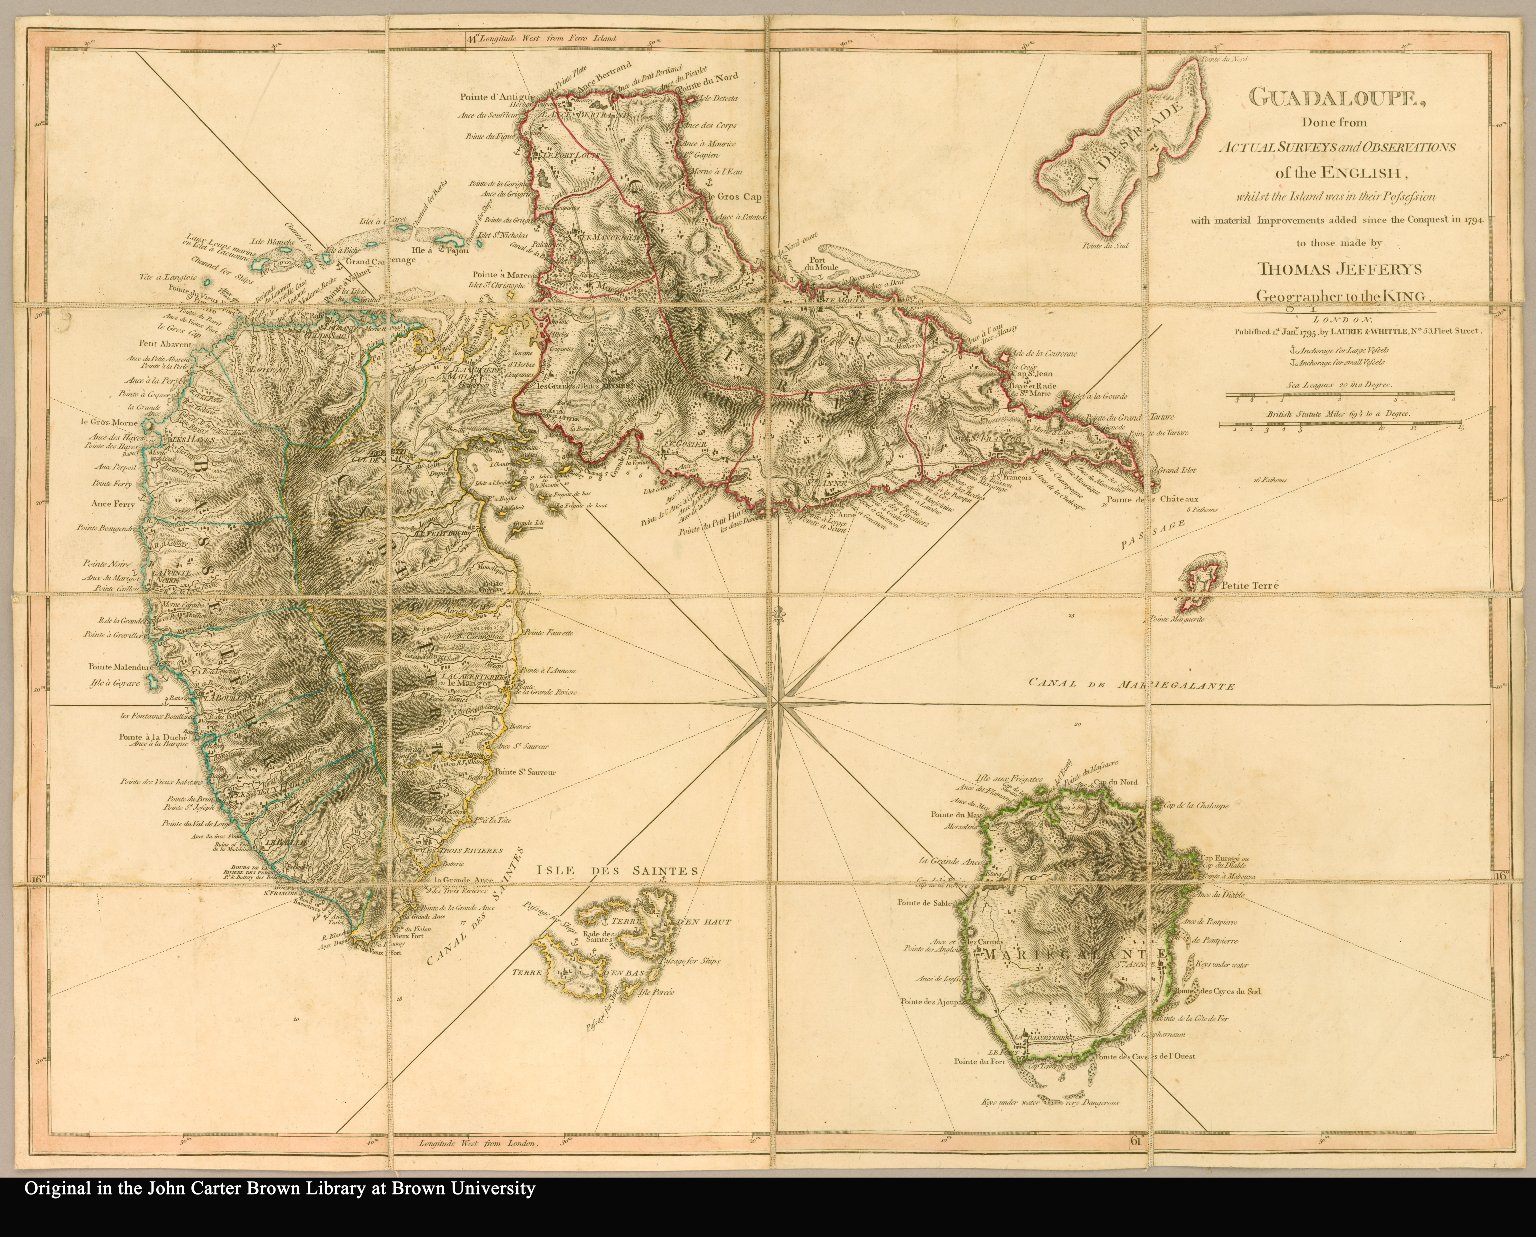 Guadaloupe, done from actual surveys and observations of the English, whilst the island was in their possession with material improvements added since the Conquest in 1794 to those made by Thomas Jefferys, Geographer to the King